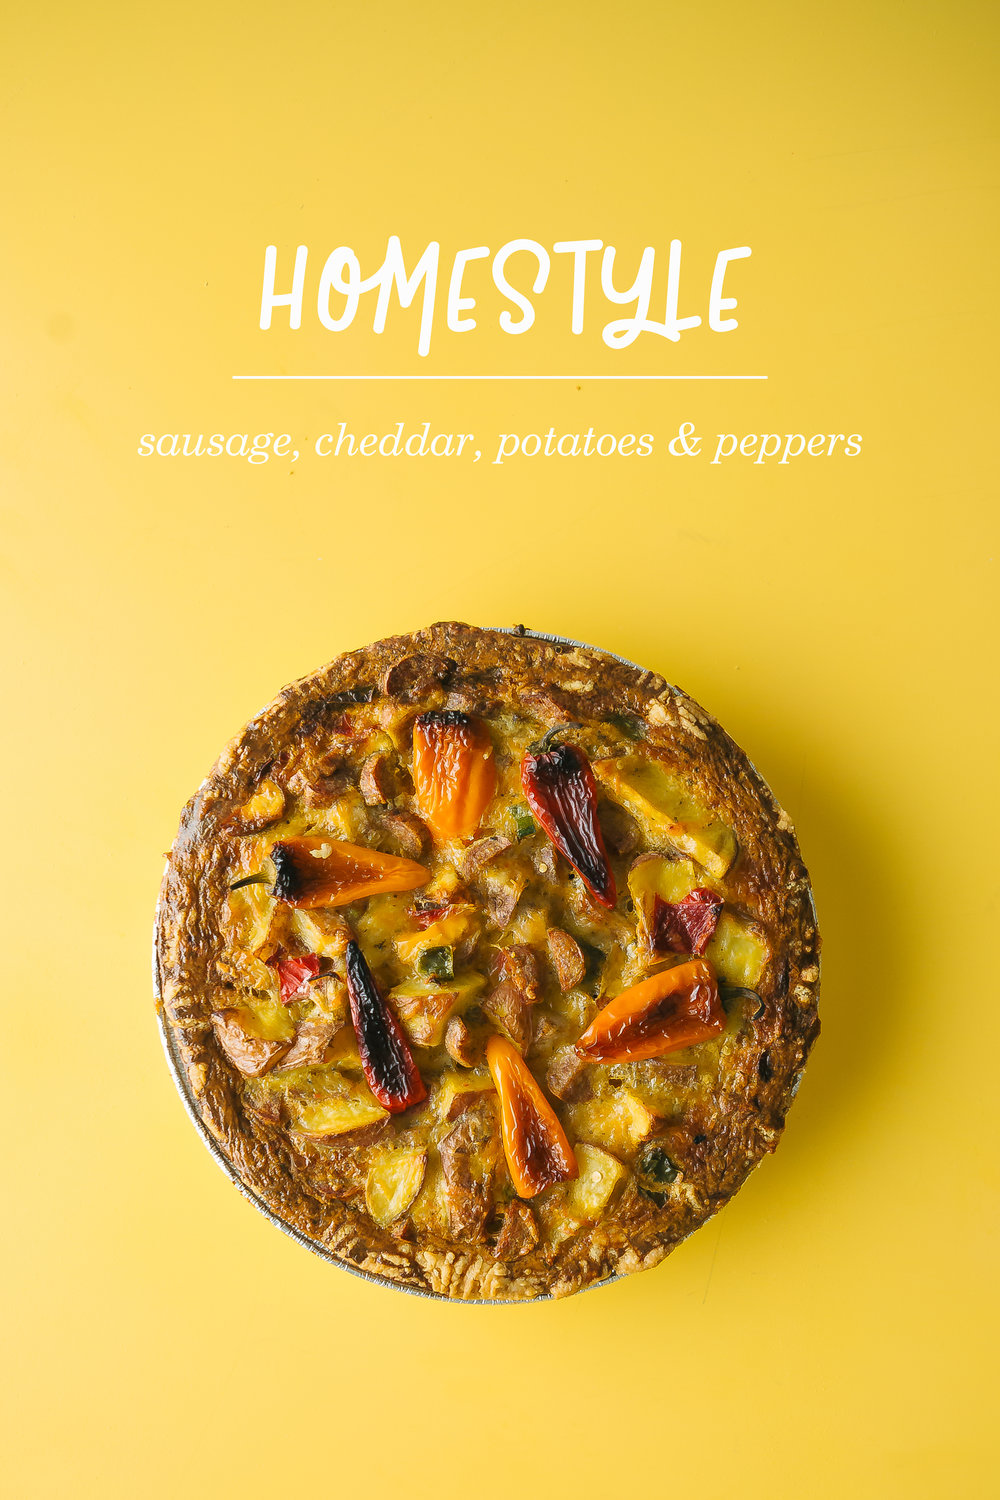 Quiche - Homestyle.jpg